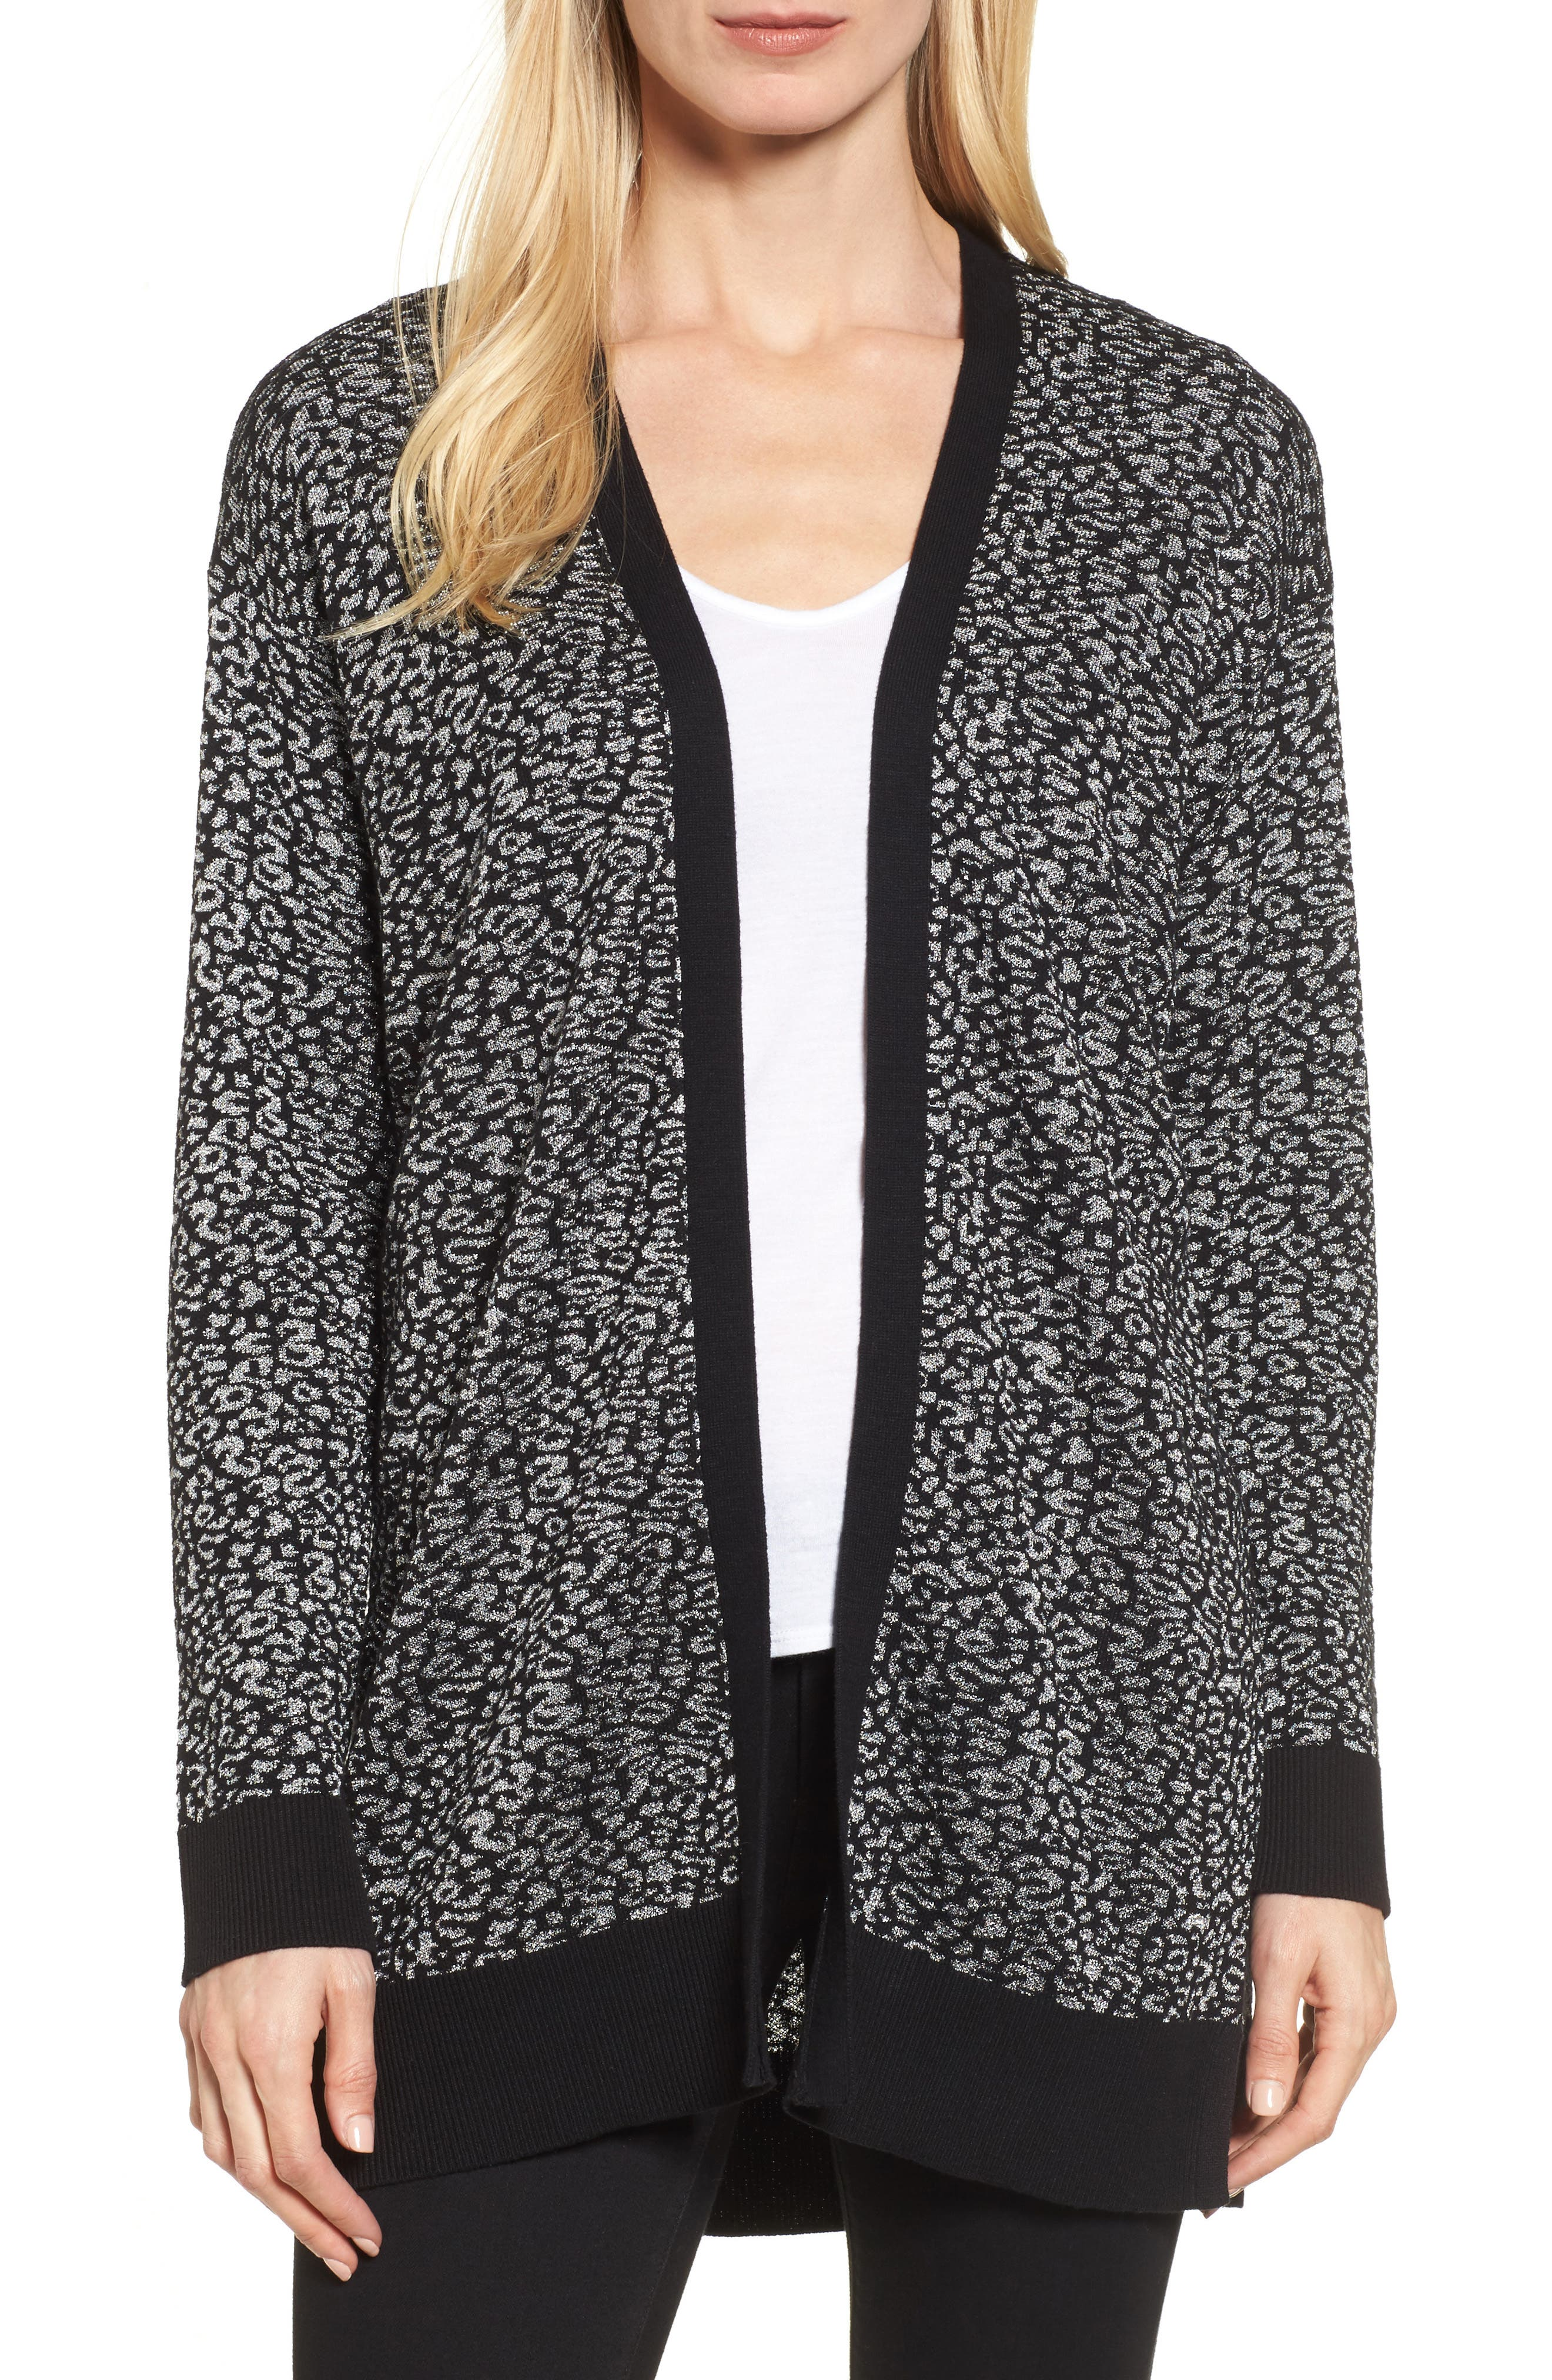 Alternate Image 1 Selected - Chaus Metallic Animal Jacquard Long Cardigan